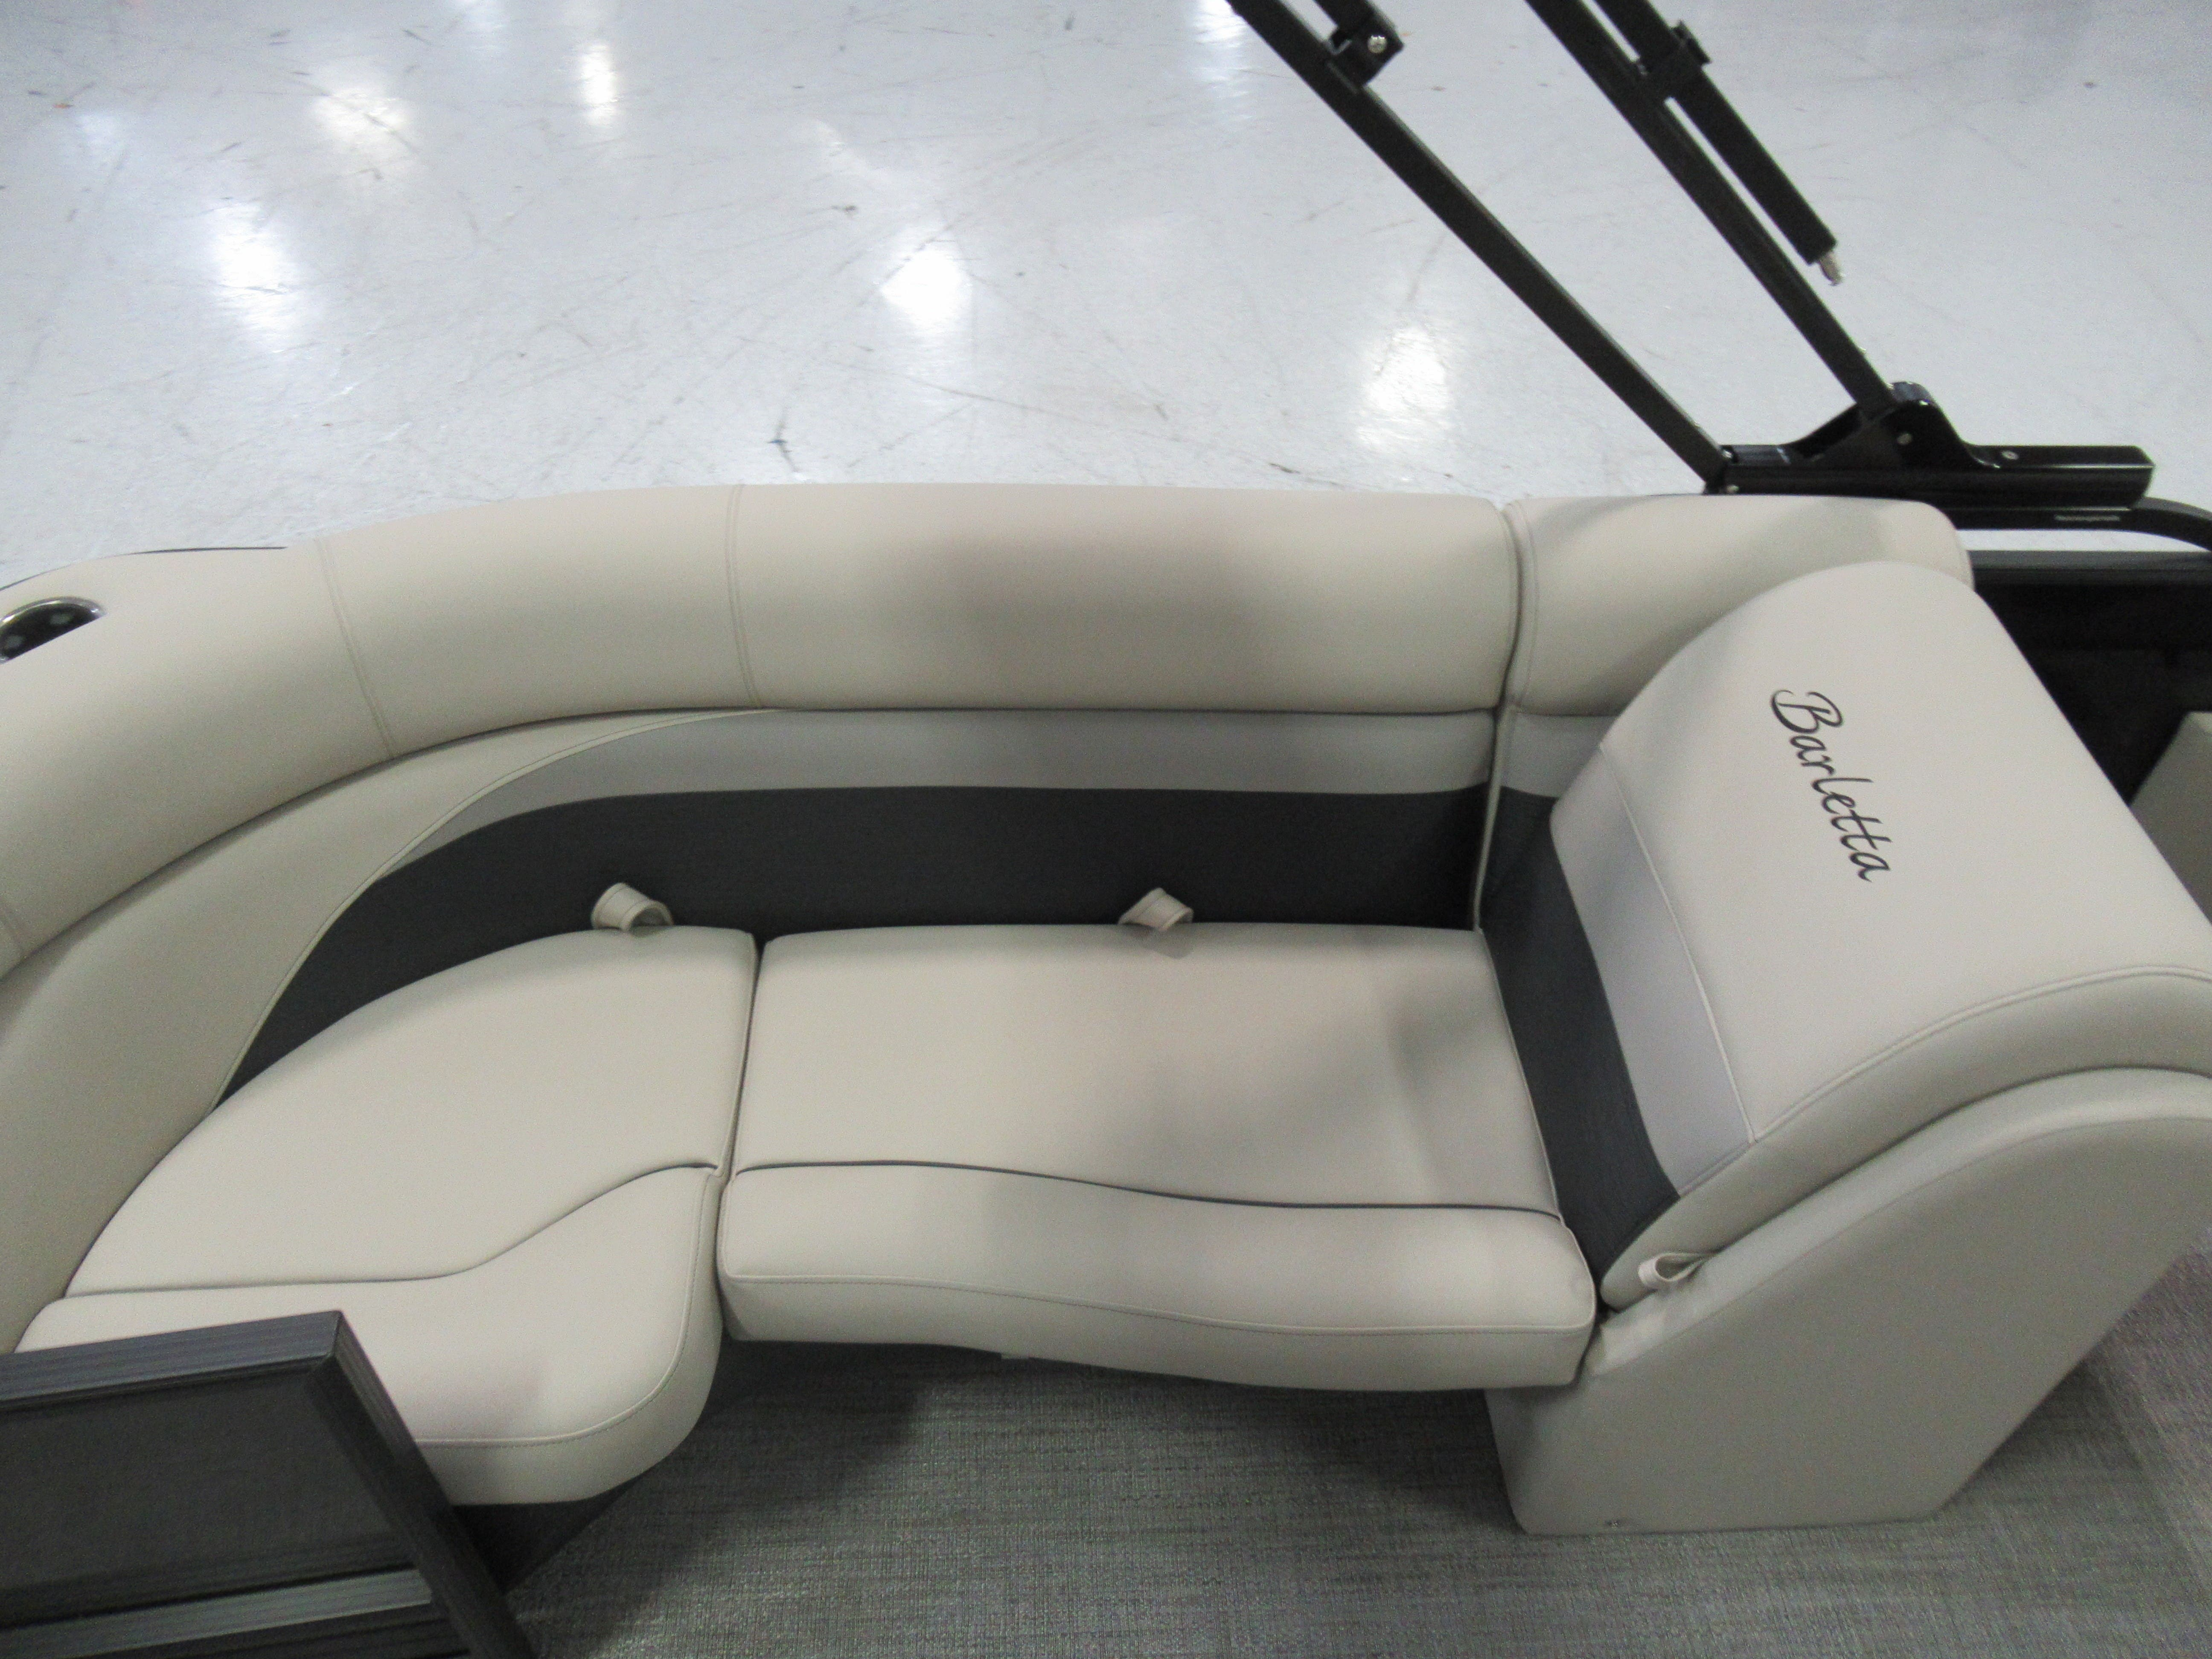 2021 Barletta boat for sale, model of the boat is C22qc & Image # 11 of 11